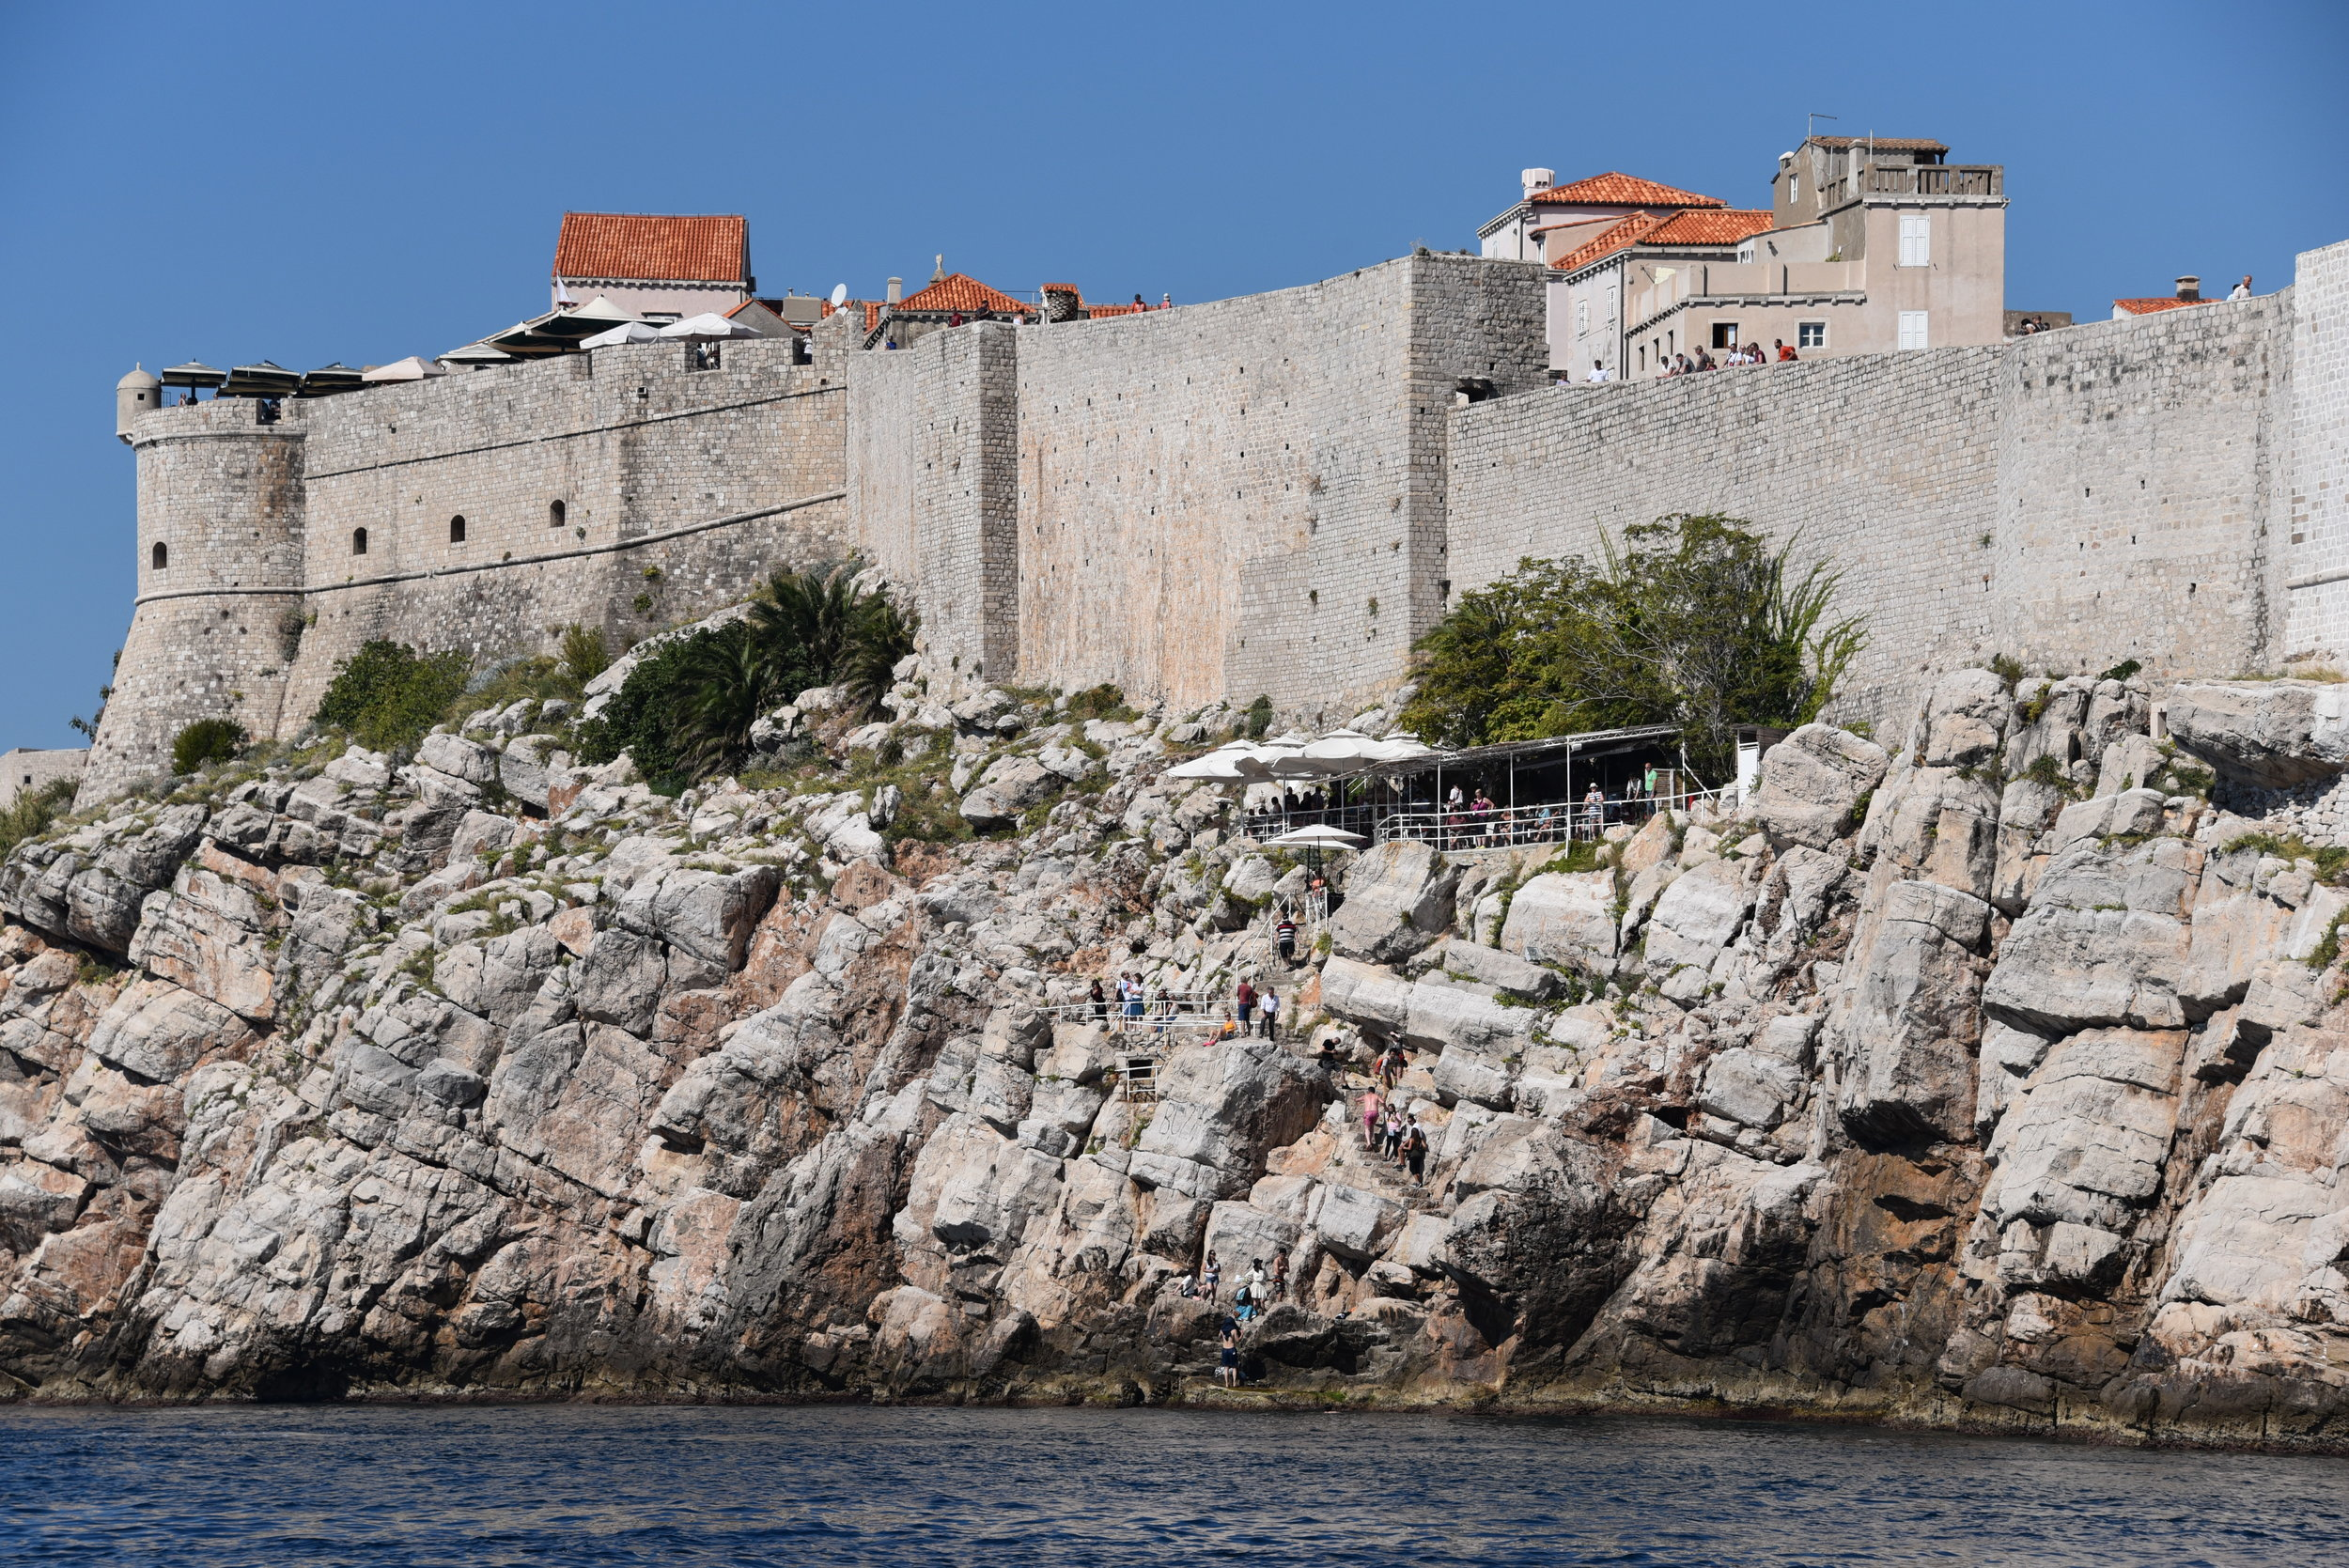 High walls on top of high cliffs... very intimidating from the sea.